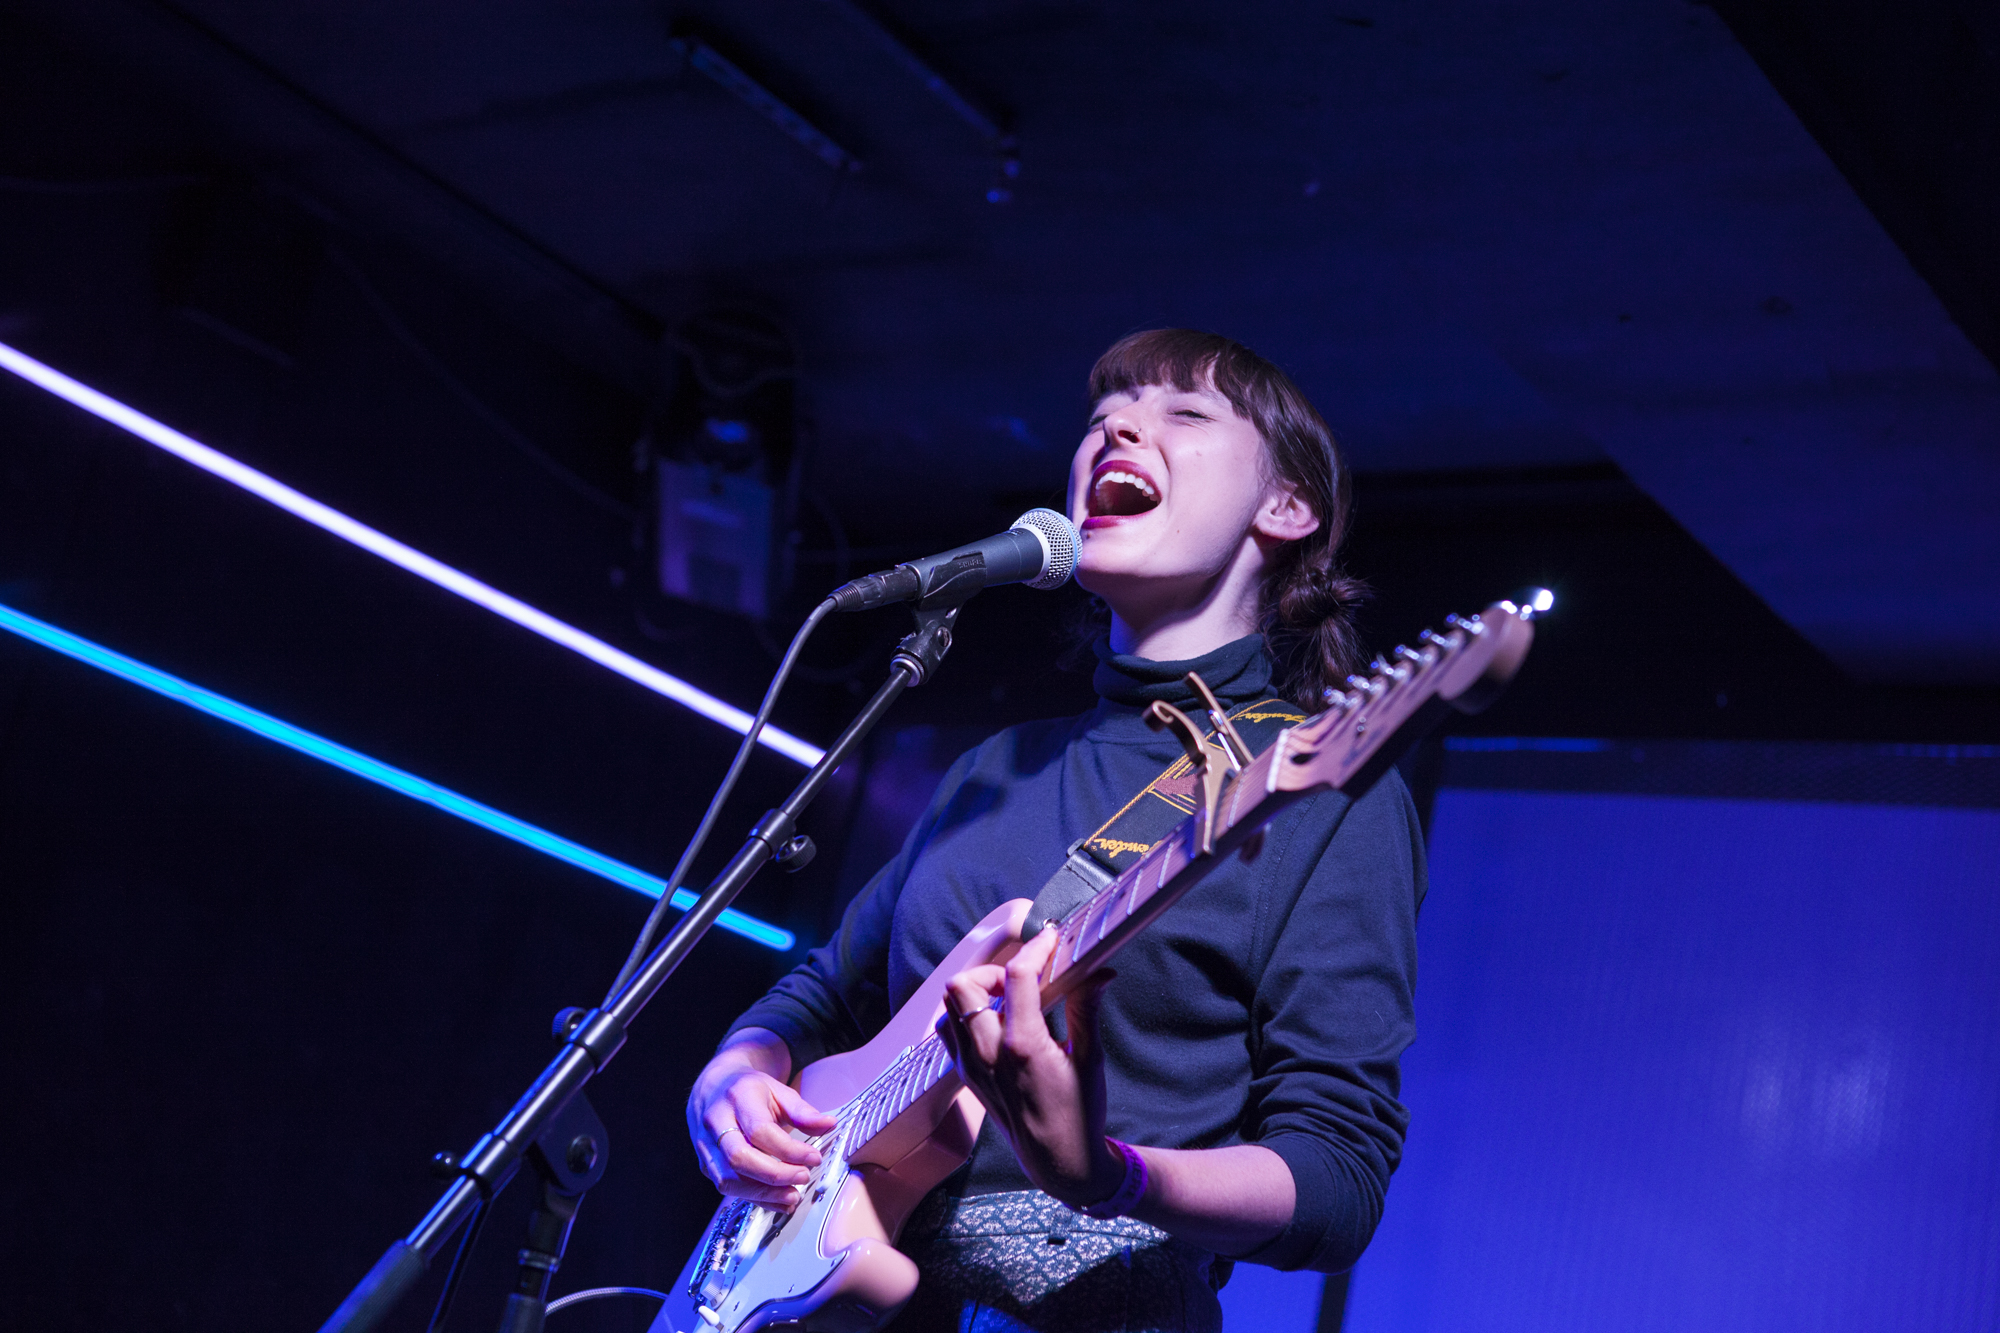 Stella Donnellly plays at Elsewhere - Zone One in Bushwick, Brooklyn, New York on March 19, 2018. (© Michael Katzif - Do not use or republish without prior consent.)